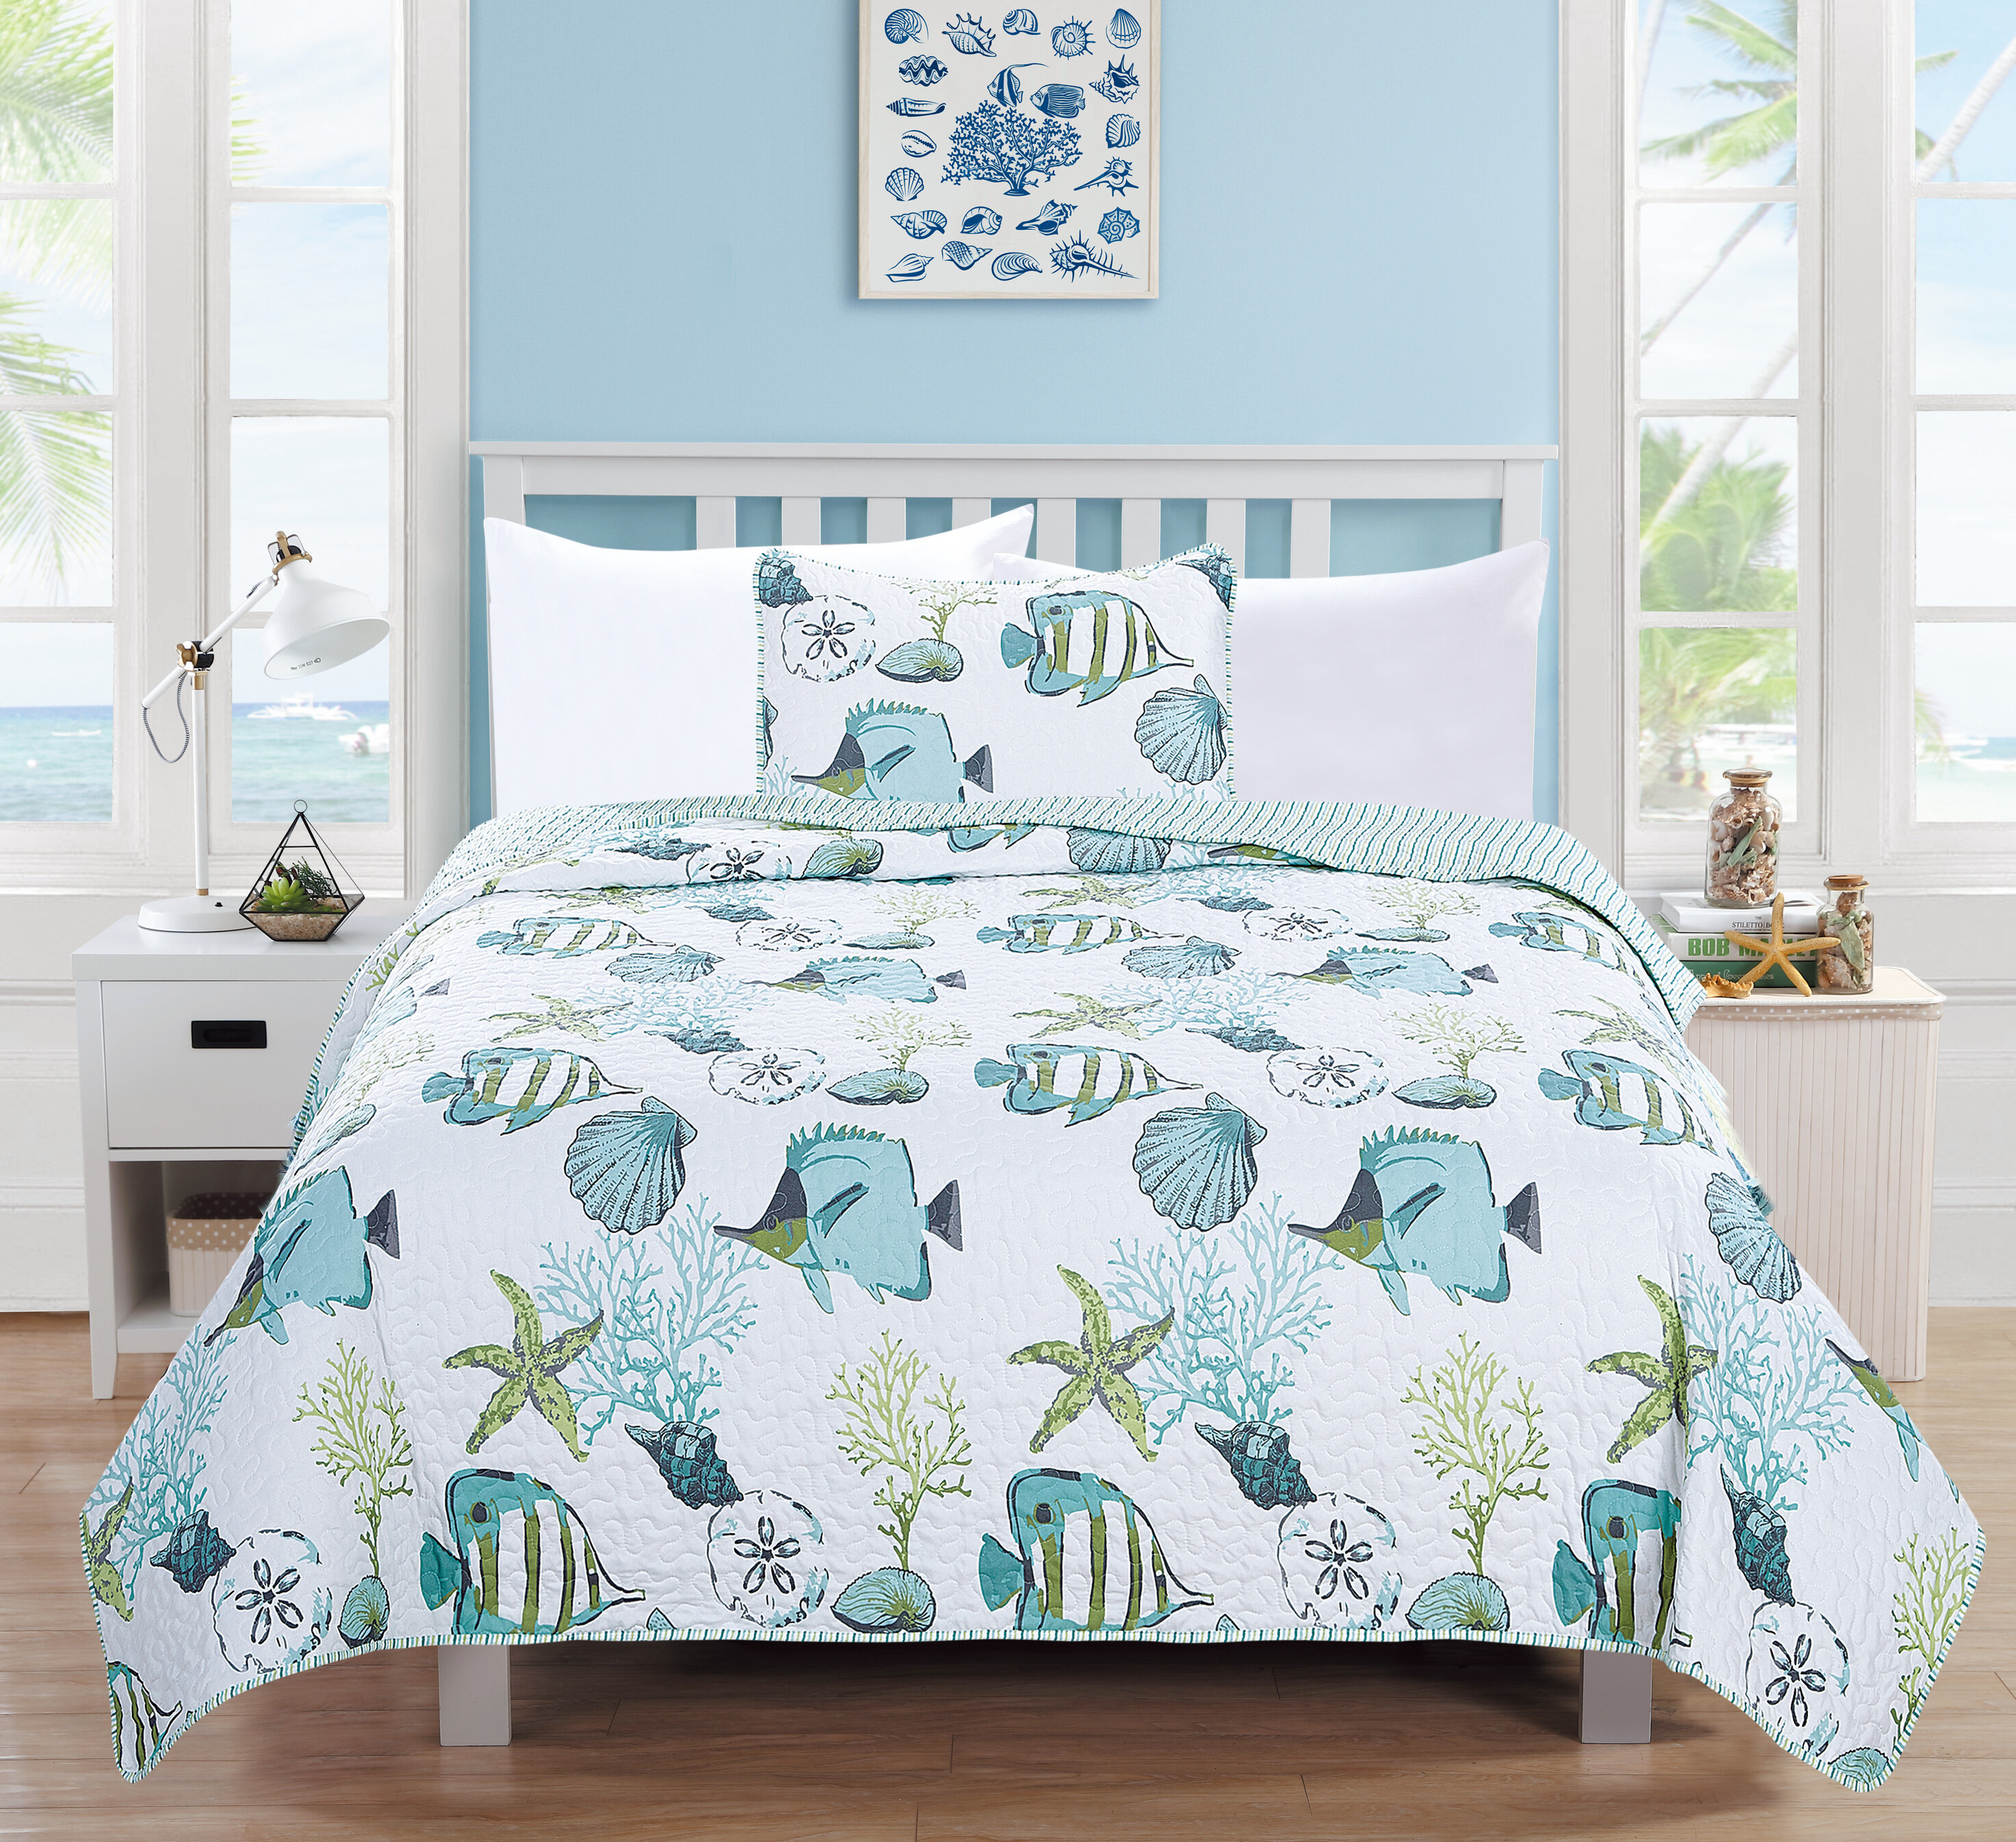 picturesque better homes and gardens quilts. Seaside Reversible Quilt Set by Home Fashion Designs Valencia Wayfair  Picturesque Better Homes And Gardens Quilts Design Plan